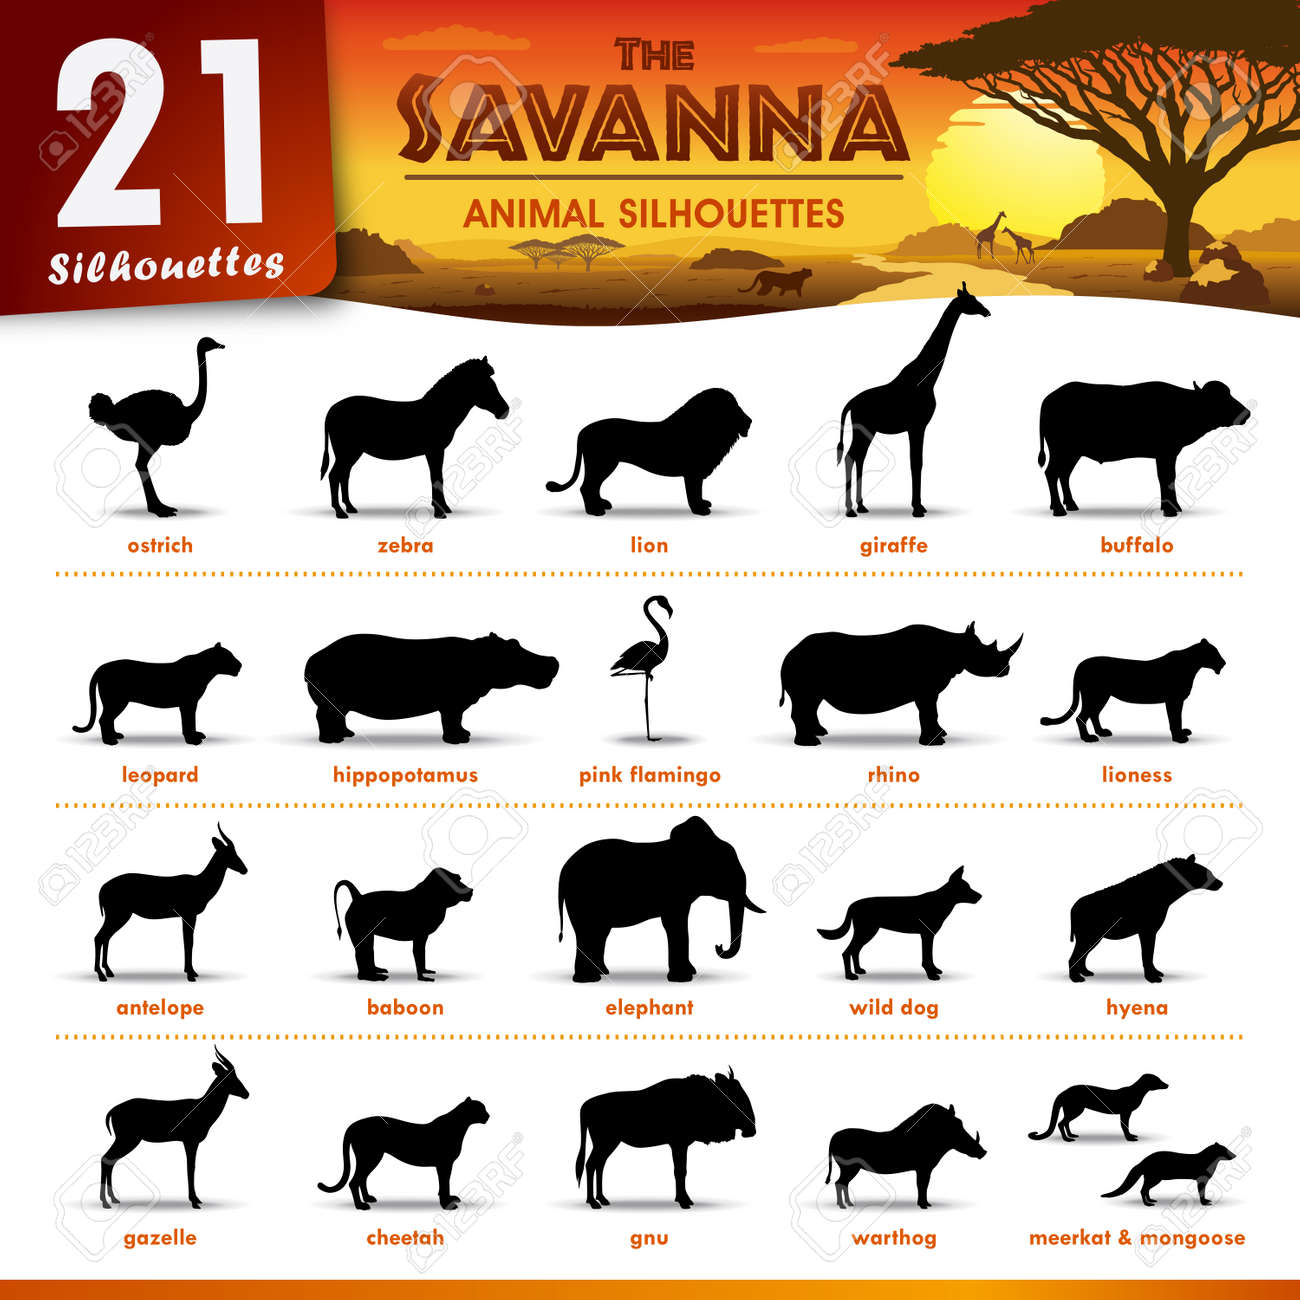 Set with africa animals black white stock vector 169 insima - Guepardo Vector Conjunto De 21 Siluetas Que Representan Diferentes Animales De La Sabana